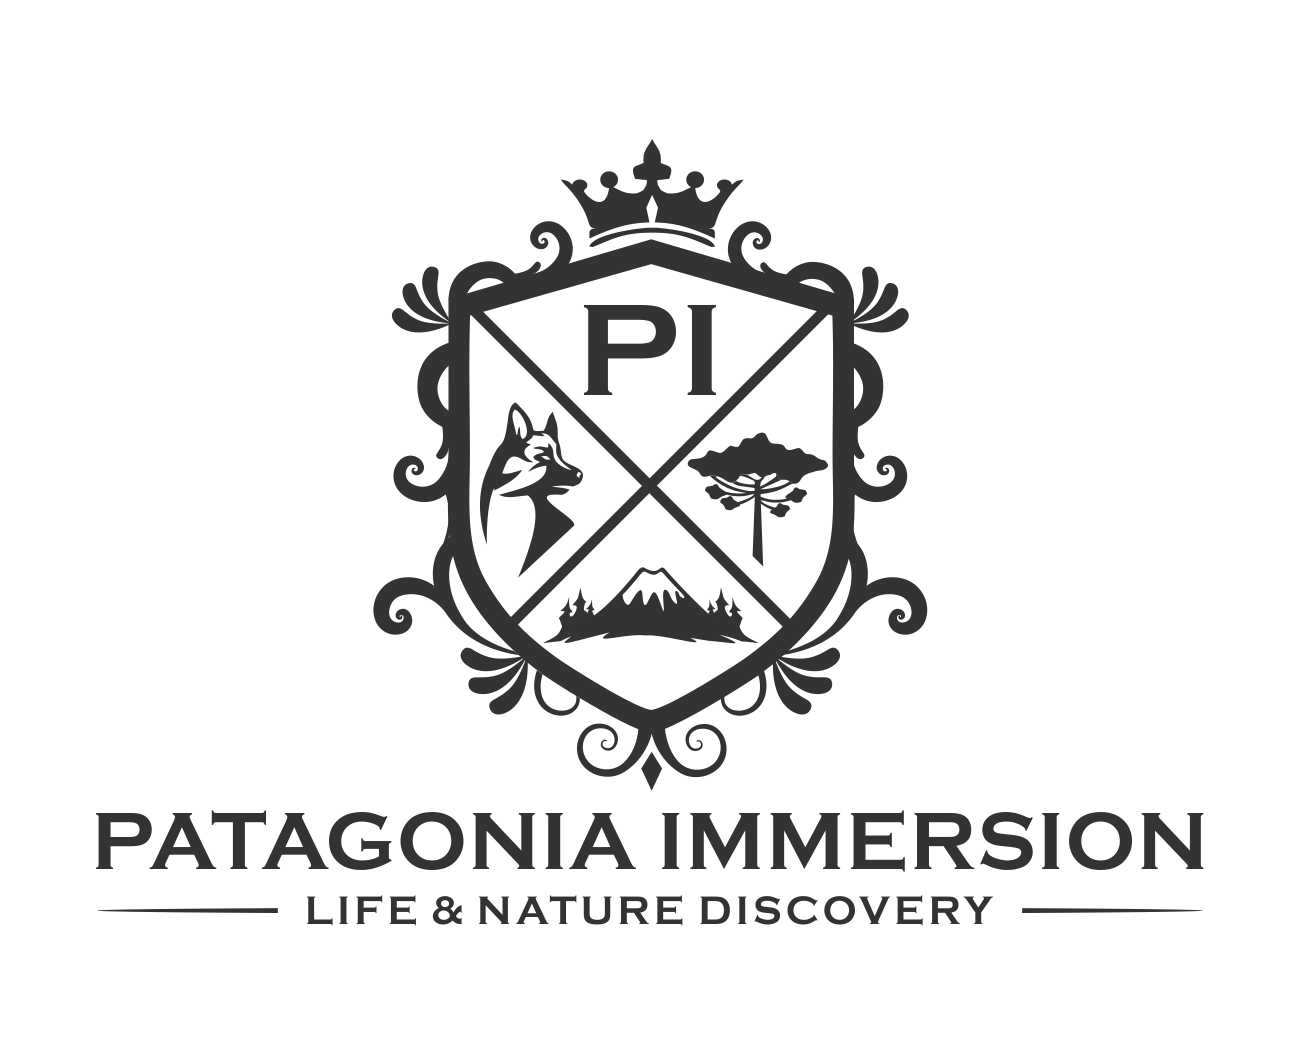 Design a challenging logo for Patagonia Immersion